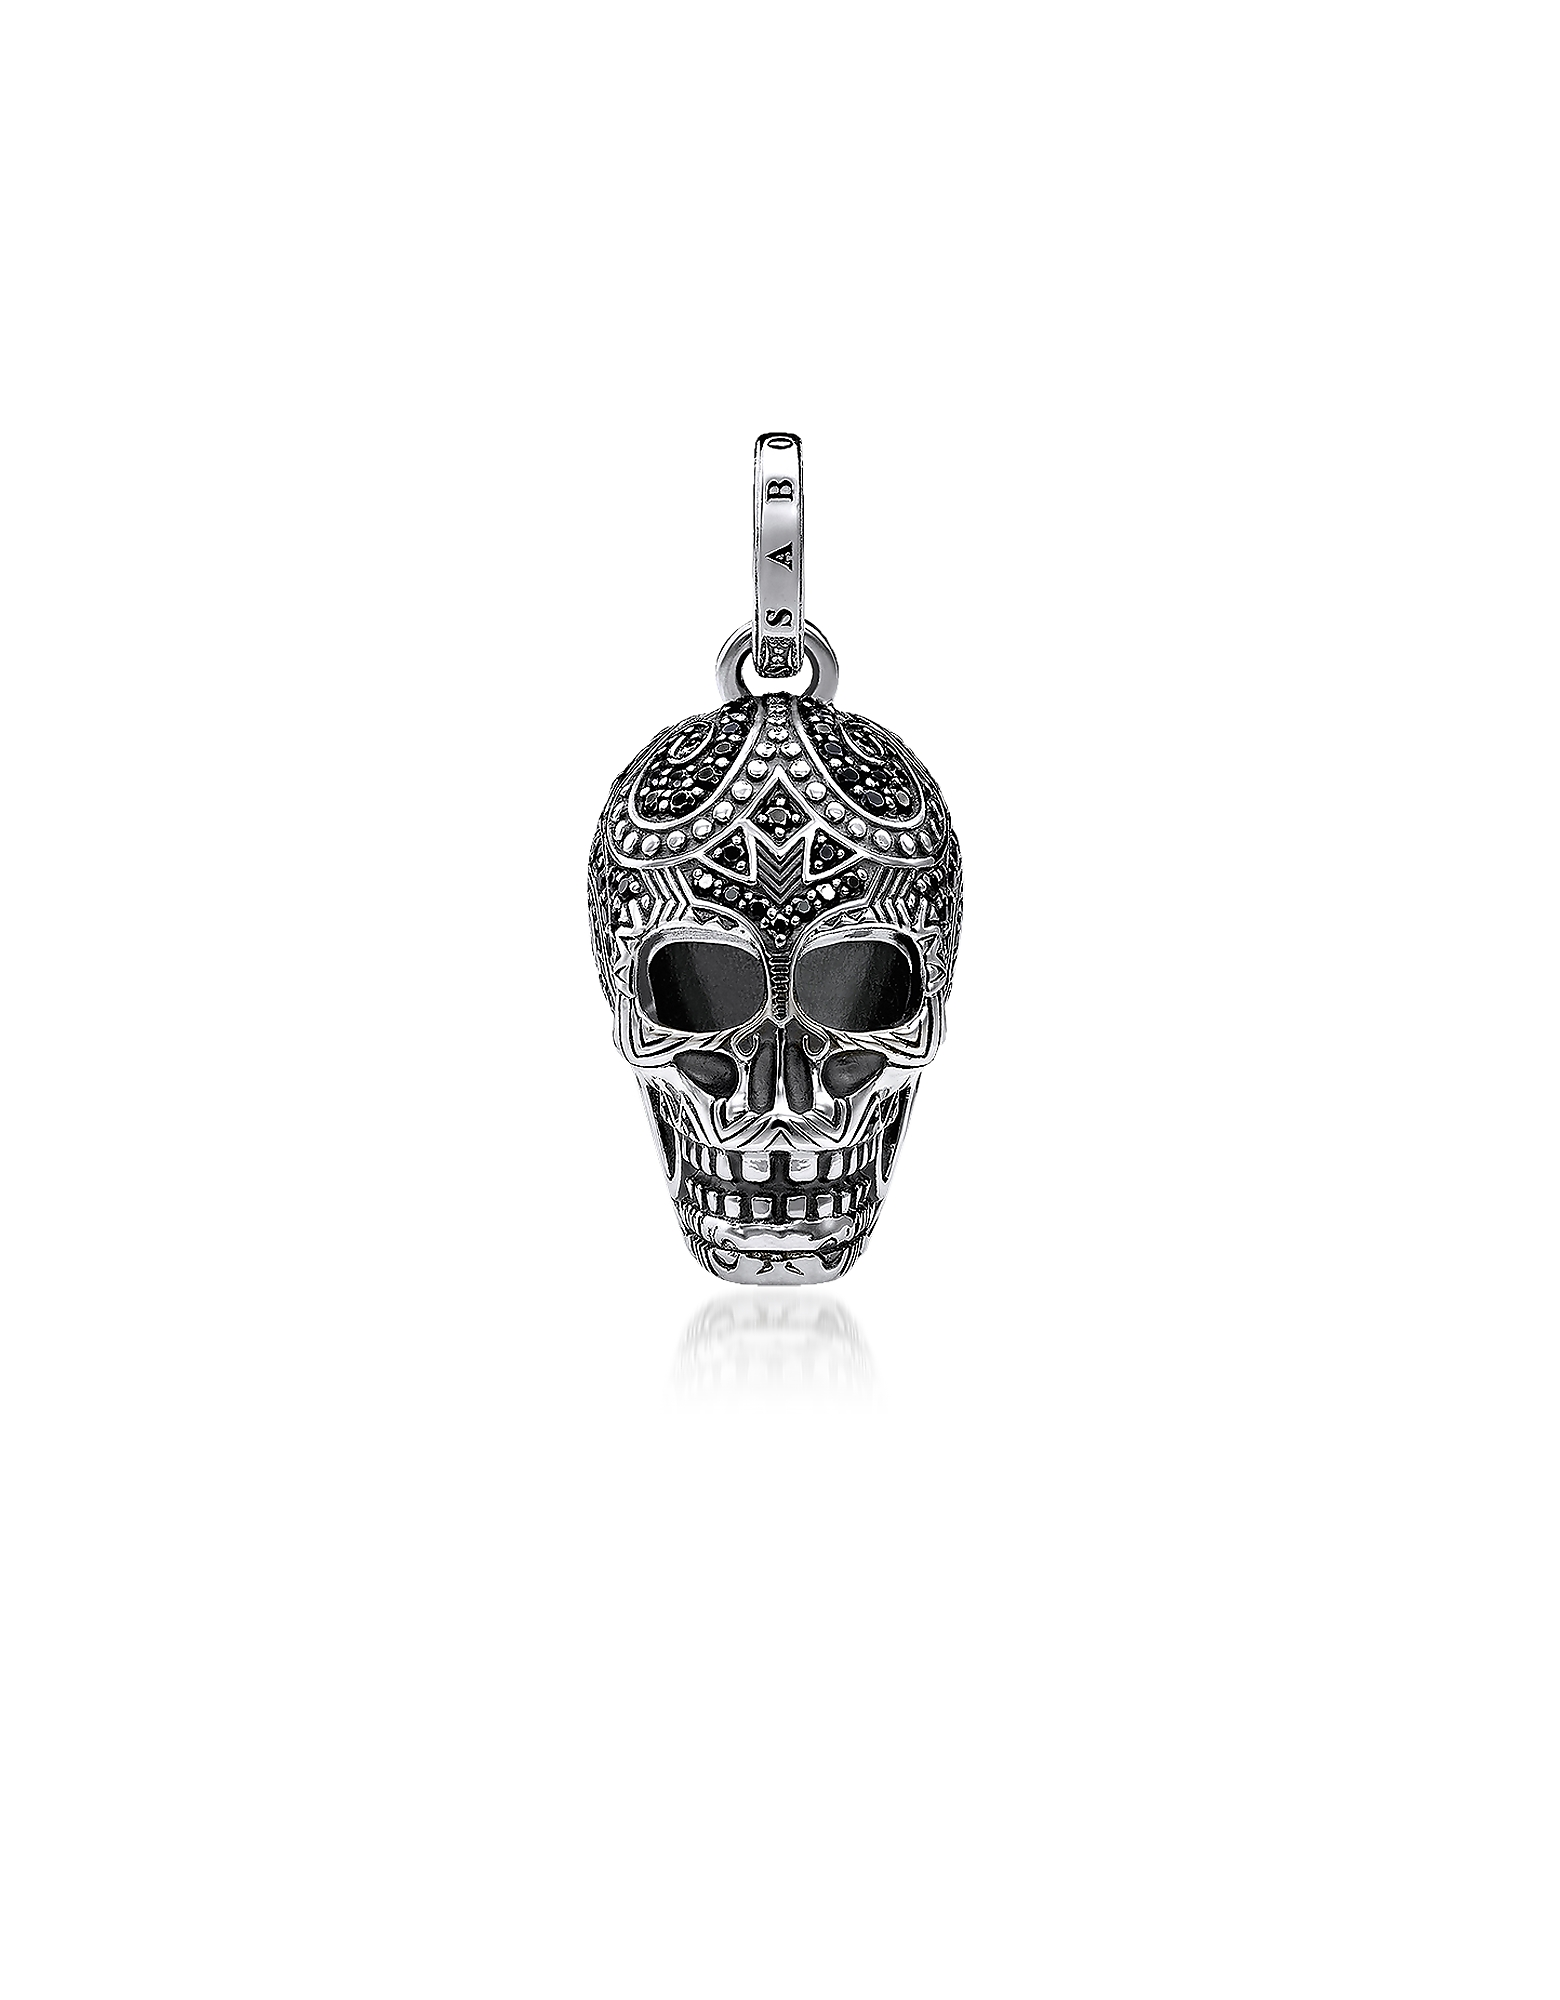 Blackened 925 Sterling Silver and Zirconia Maori Skull Pendant